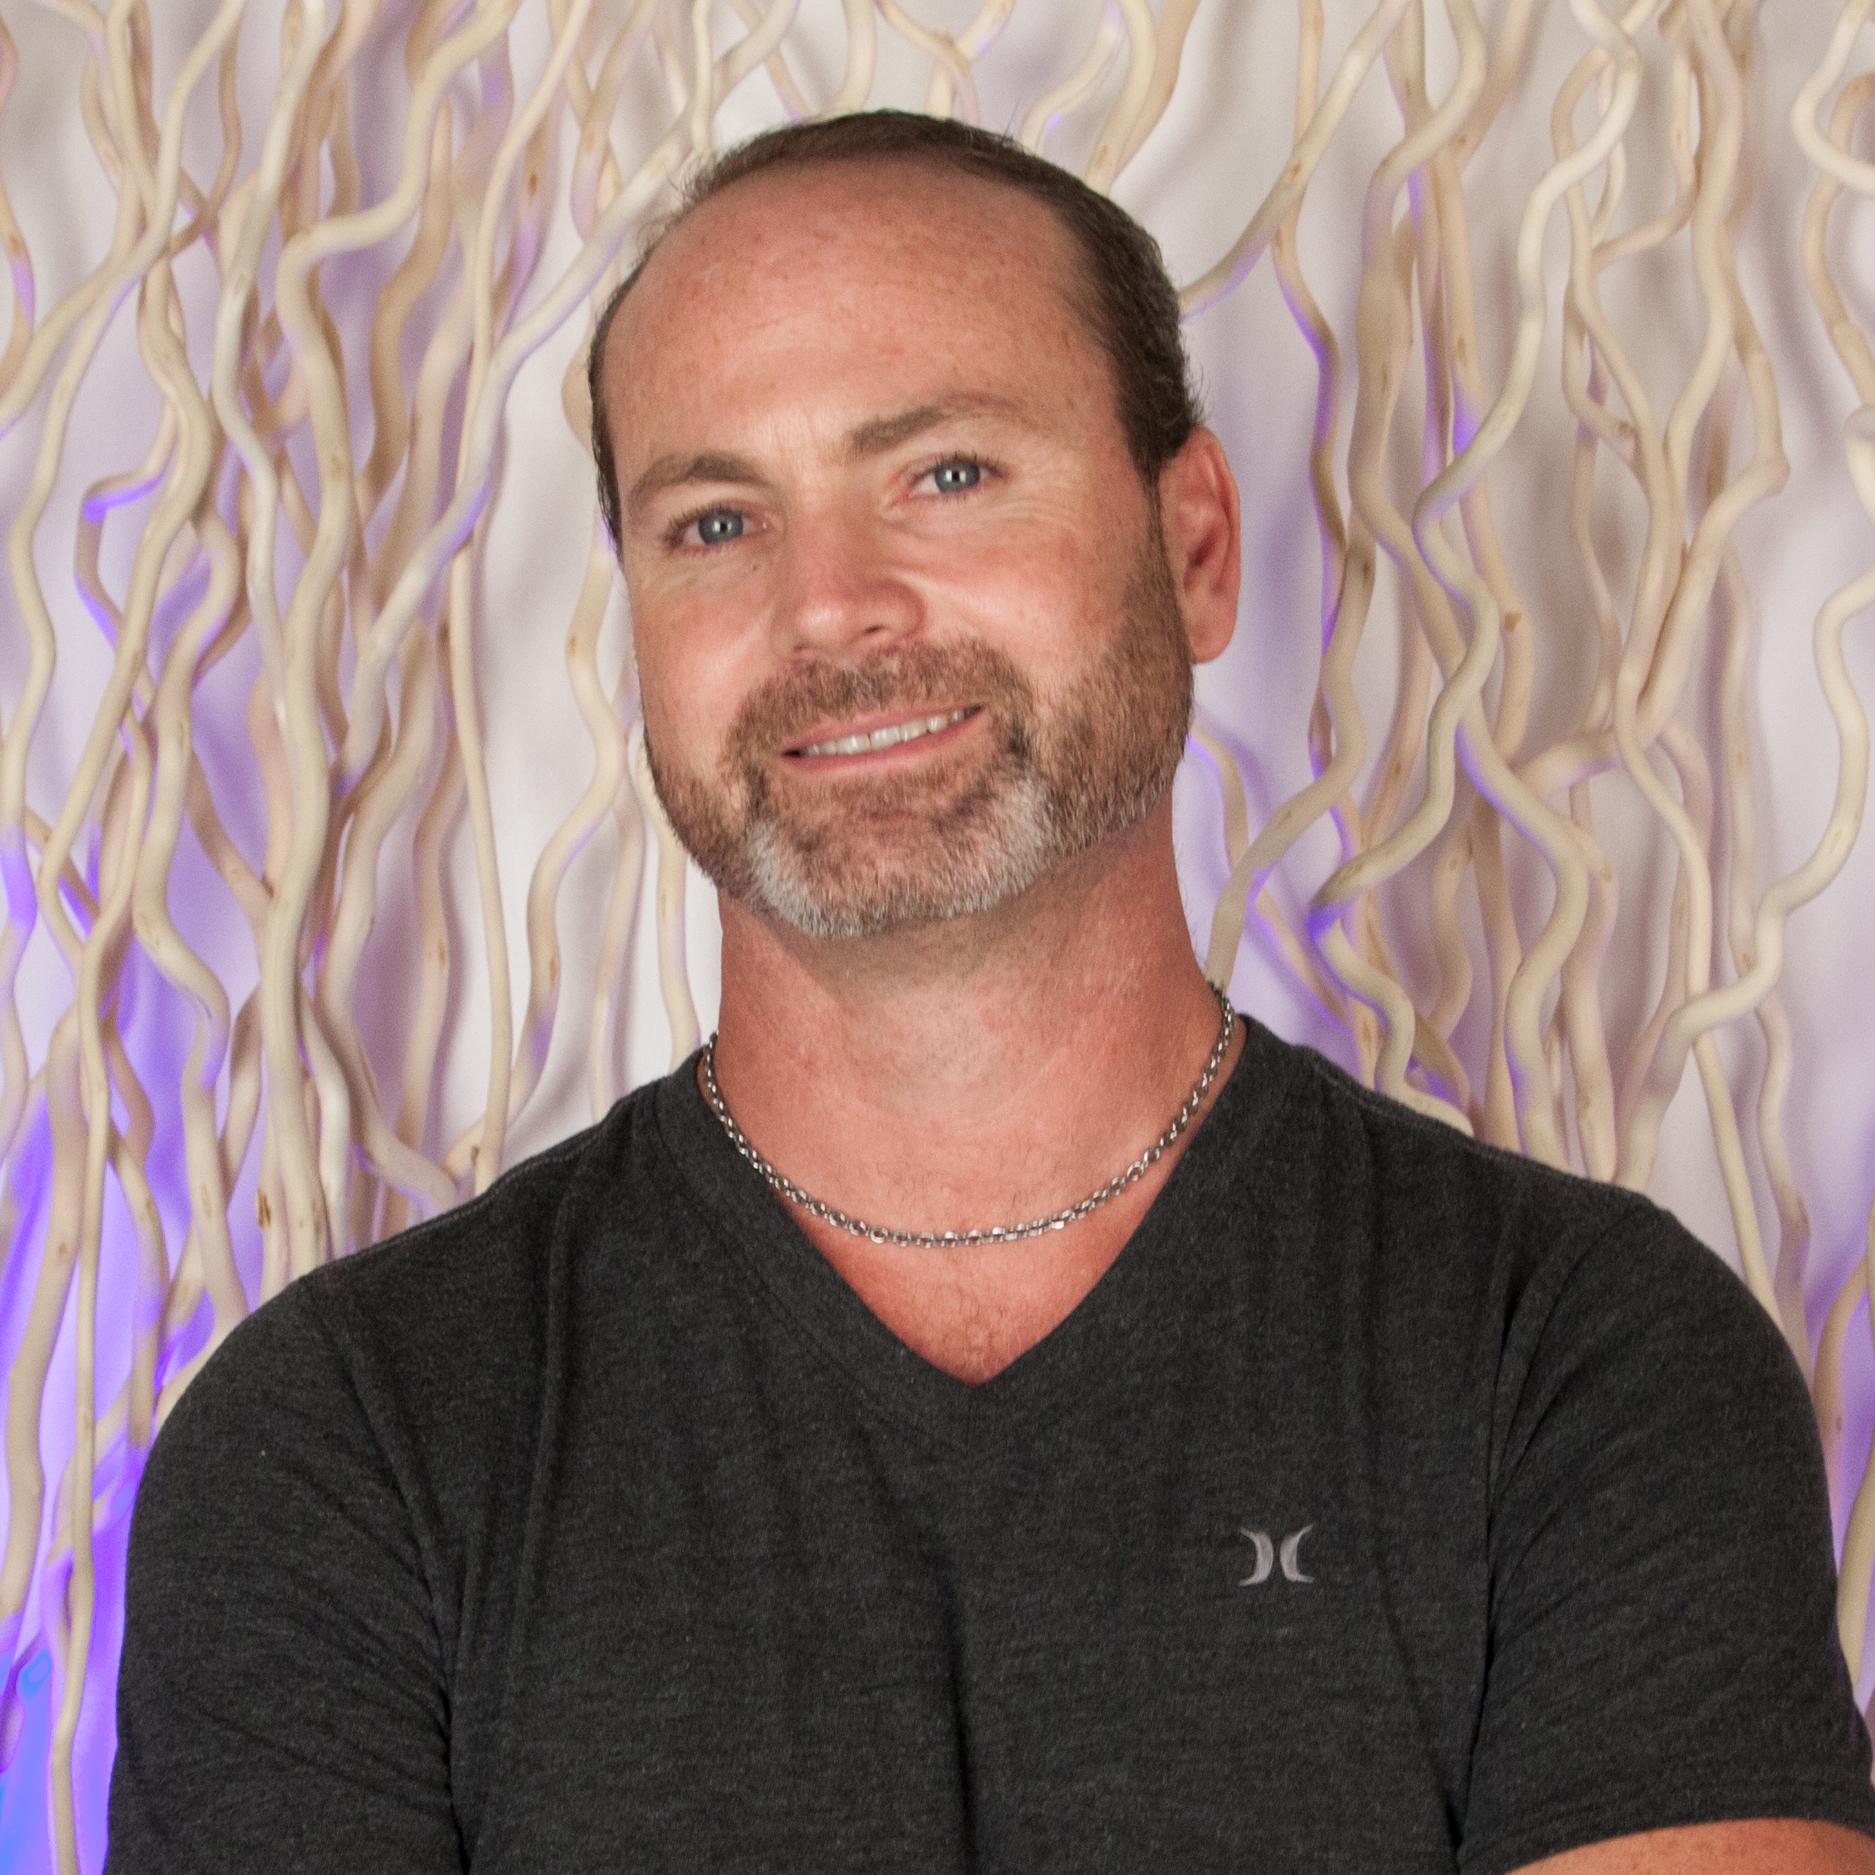 Brad Green  |  Owner and Licensed Massage Therapist